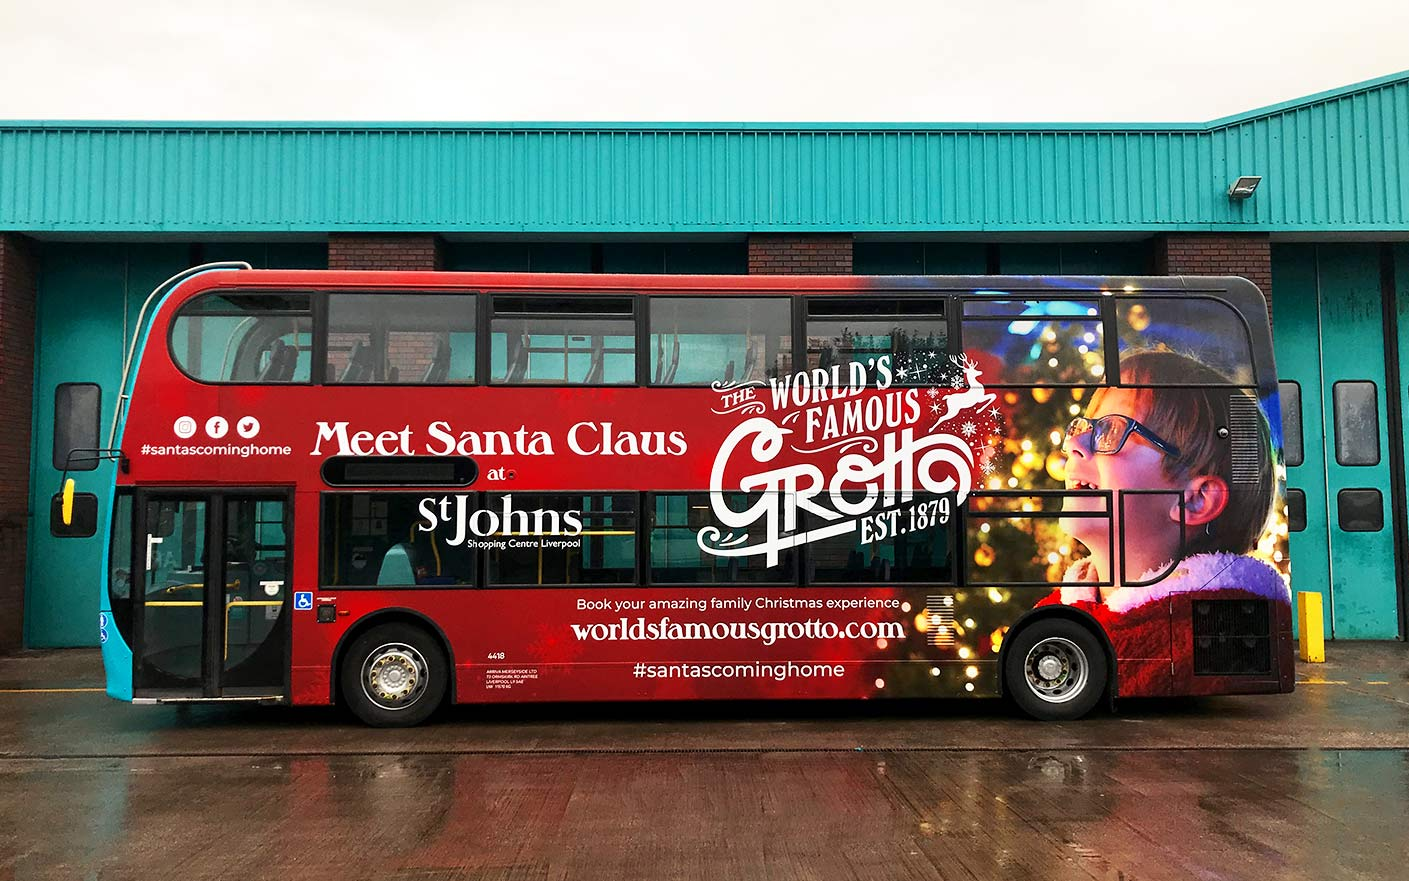 Double decker bus wrap arriva bus Liverpool famous grotto